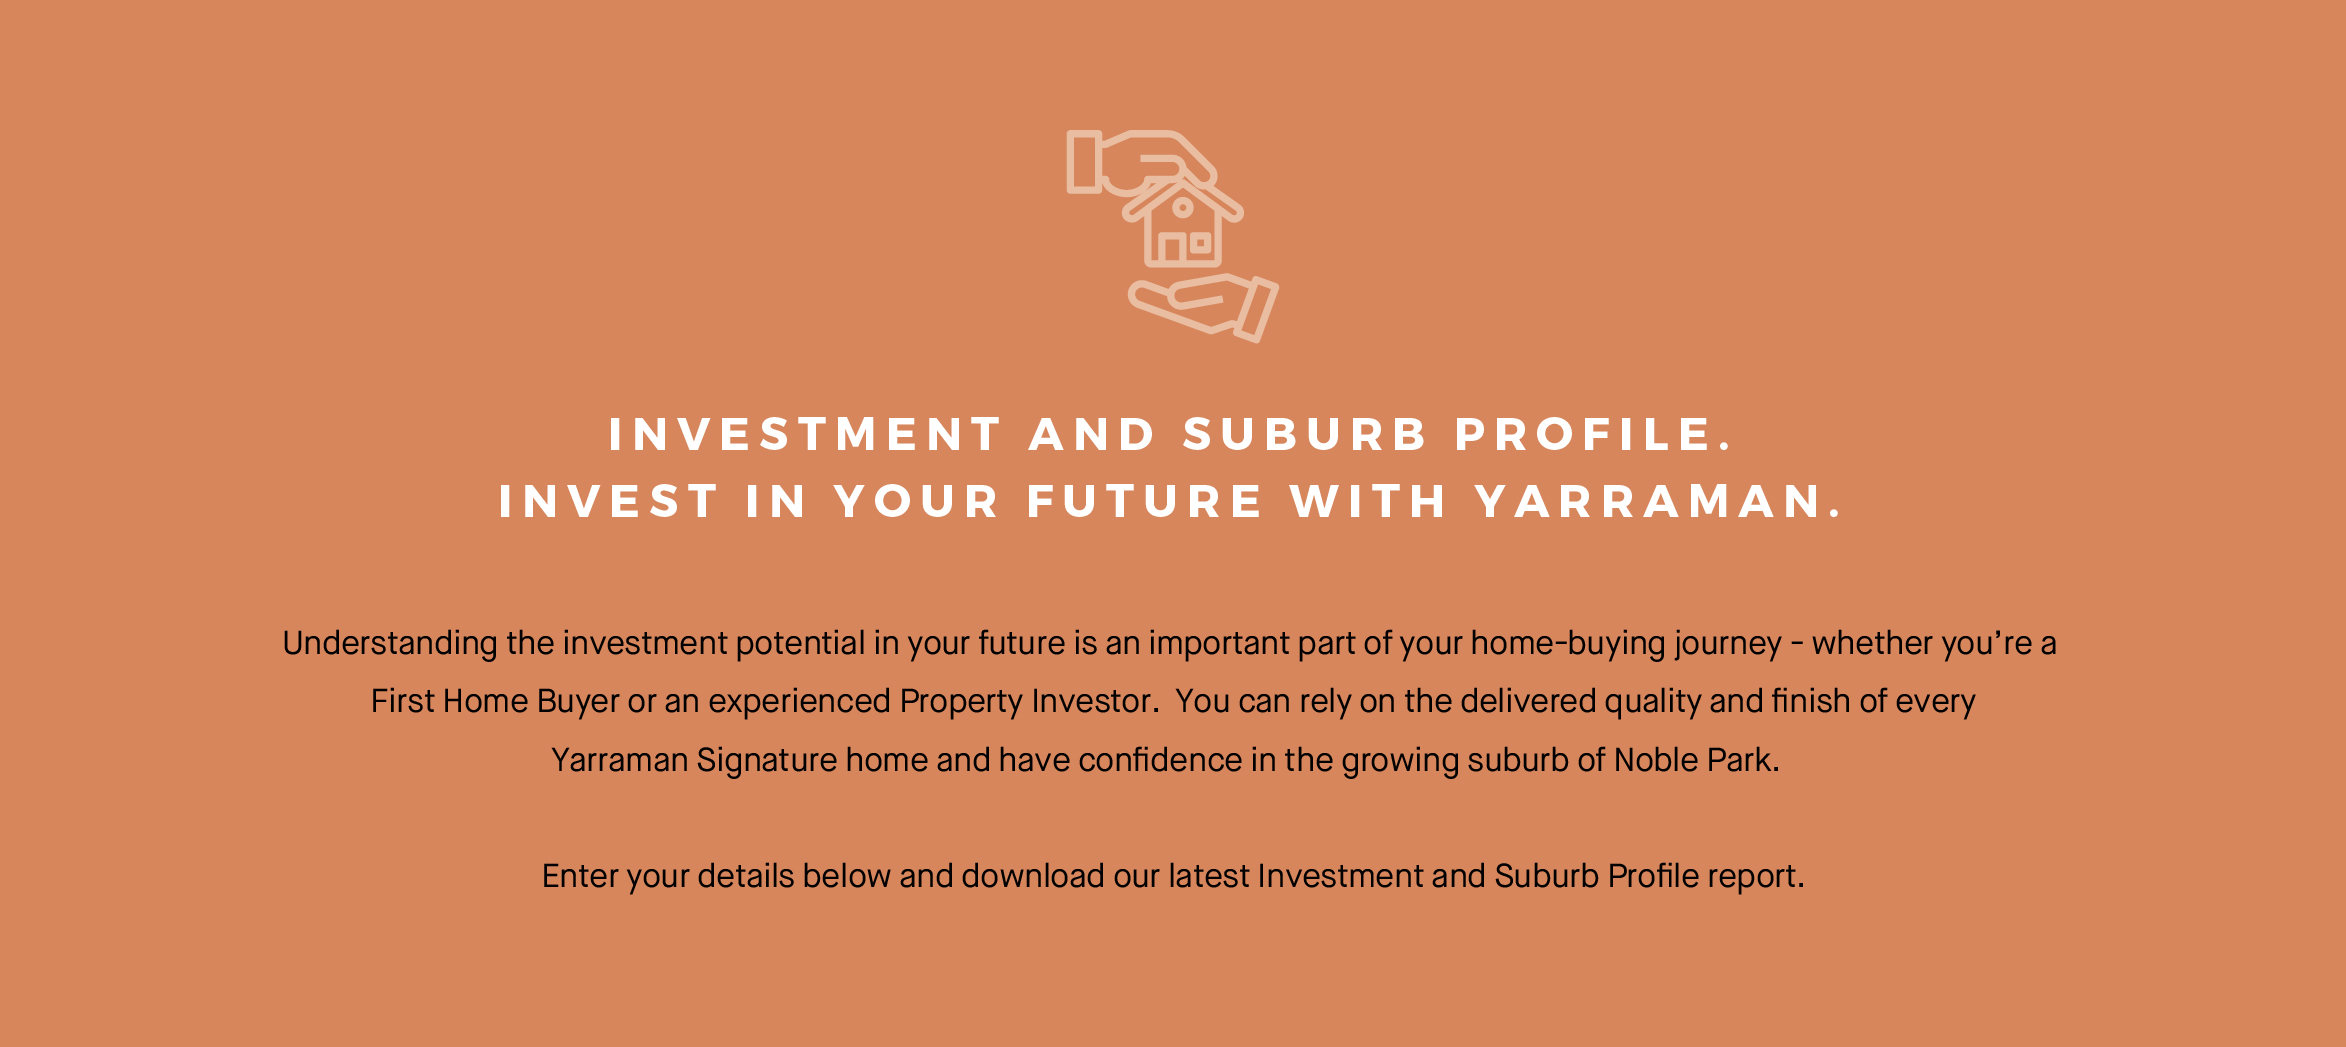 iNVESTMENT AND SUBURB PROFILE.